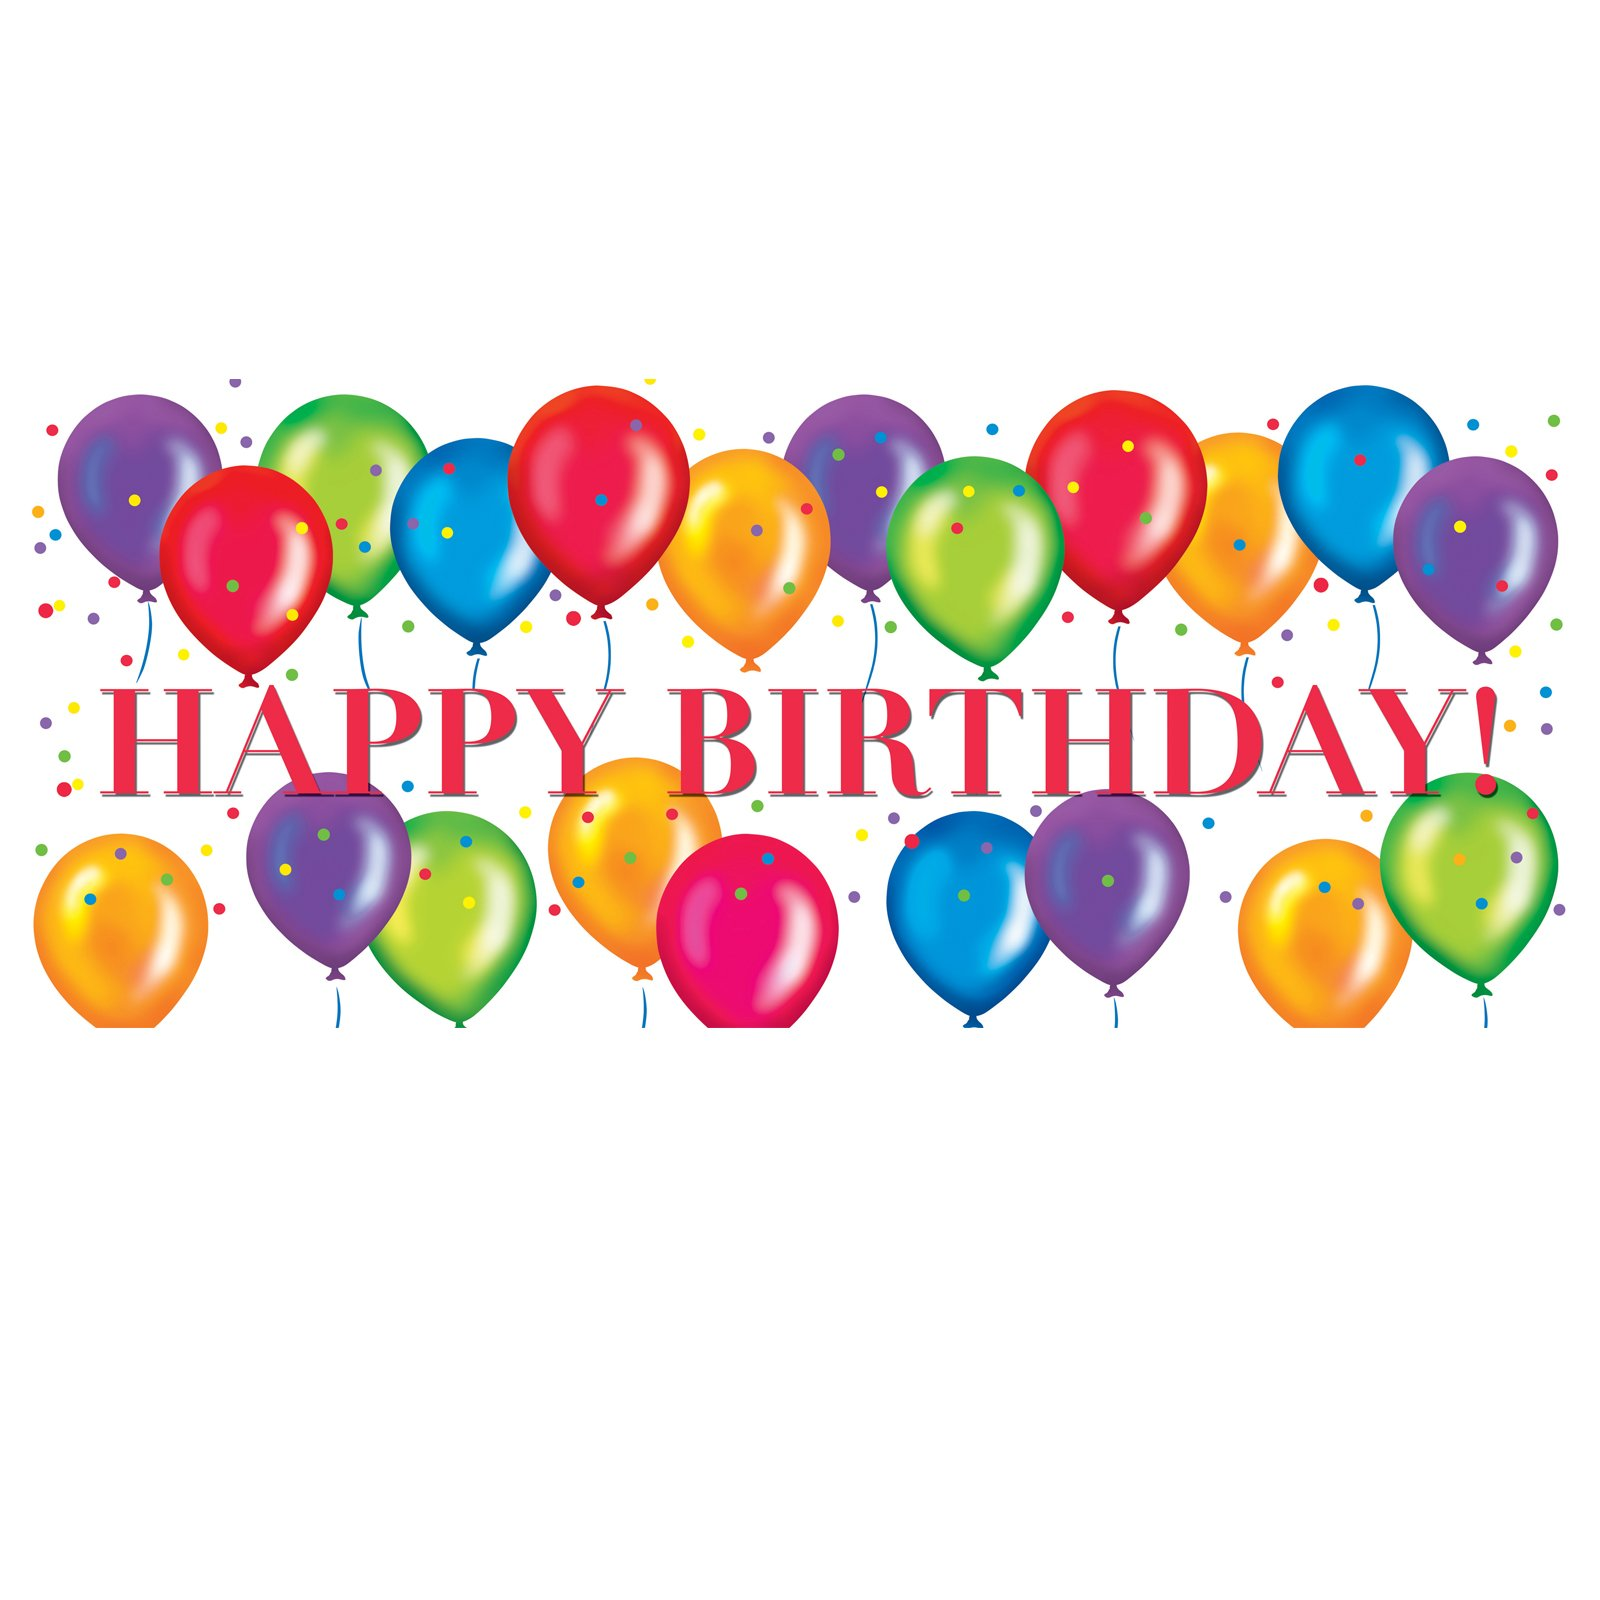 Birthday Party PNG HD - 128597